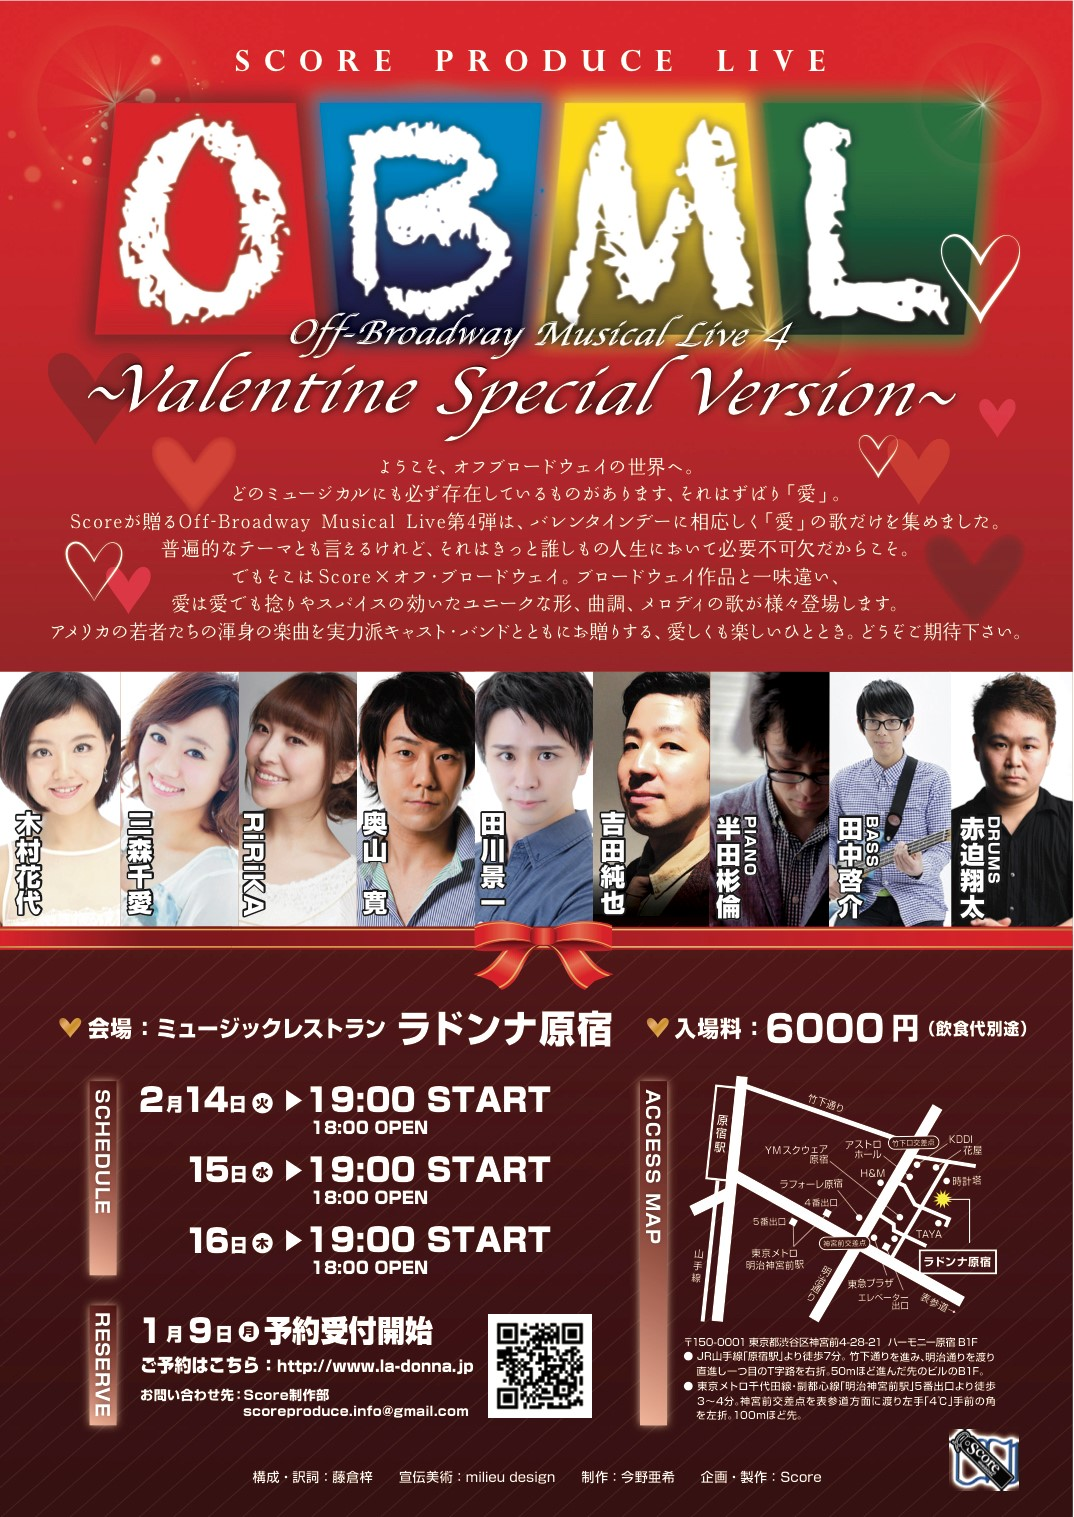 〜Score Produce LIVE〜 Off-Broadway MUSICAL LIVE4 〜 Valentine Special Version〜